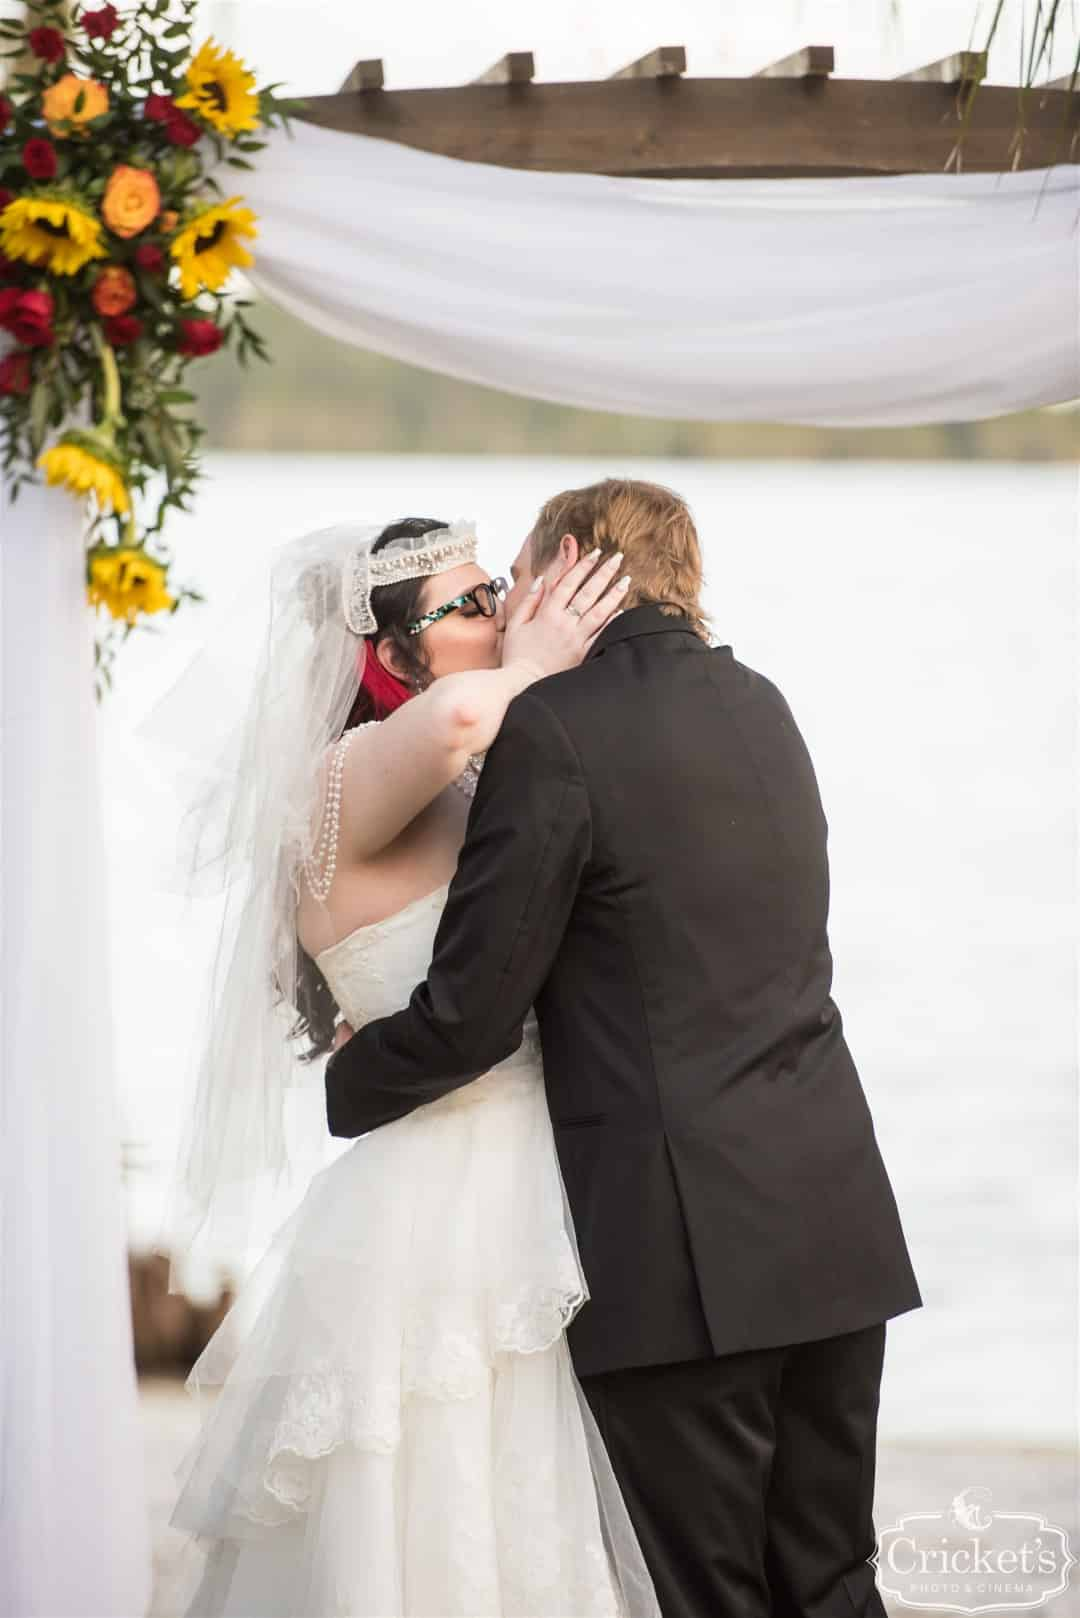 Jesea and Even kissing at wedding ceremony